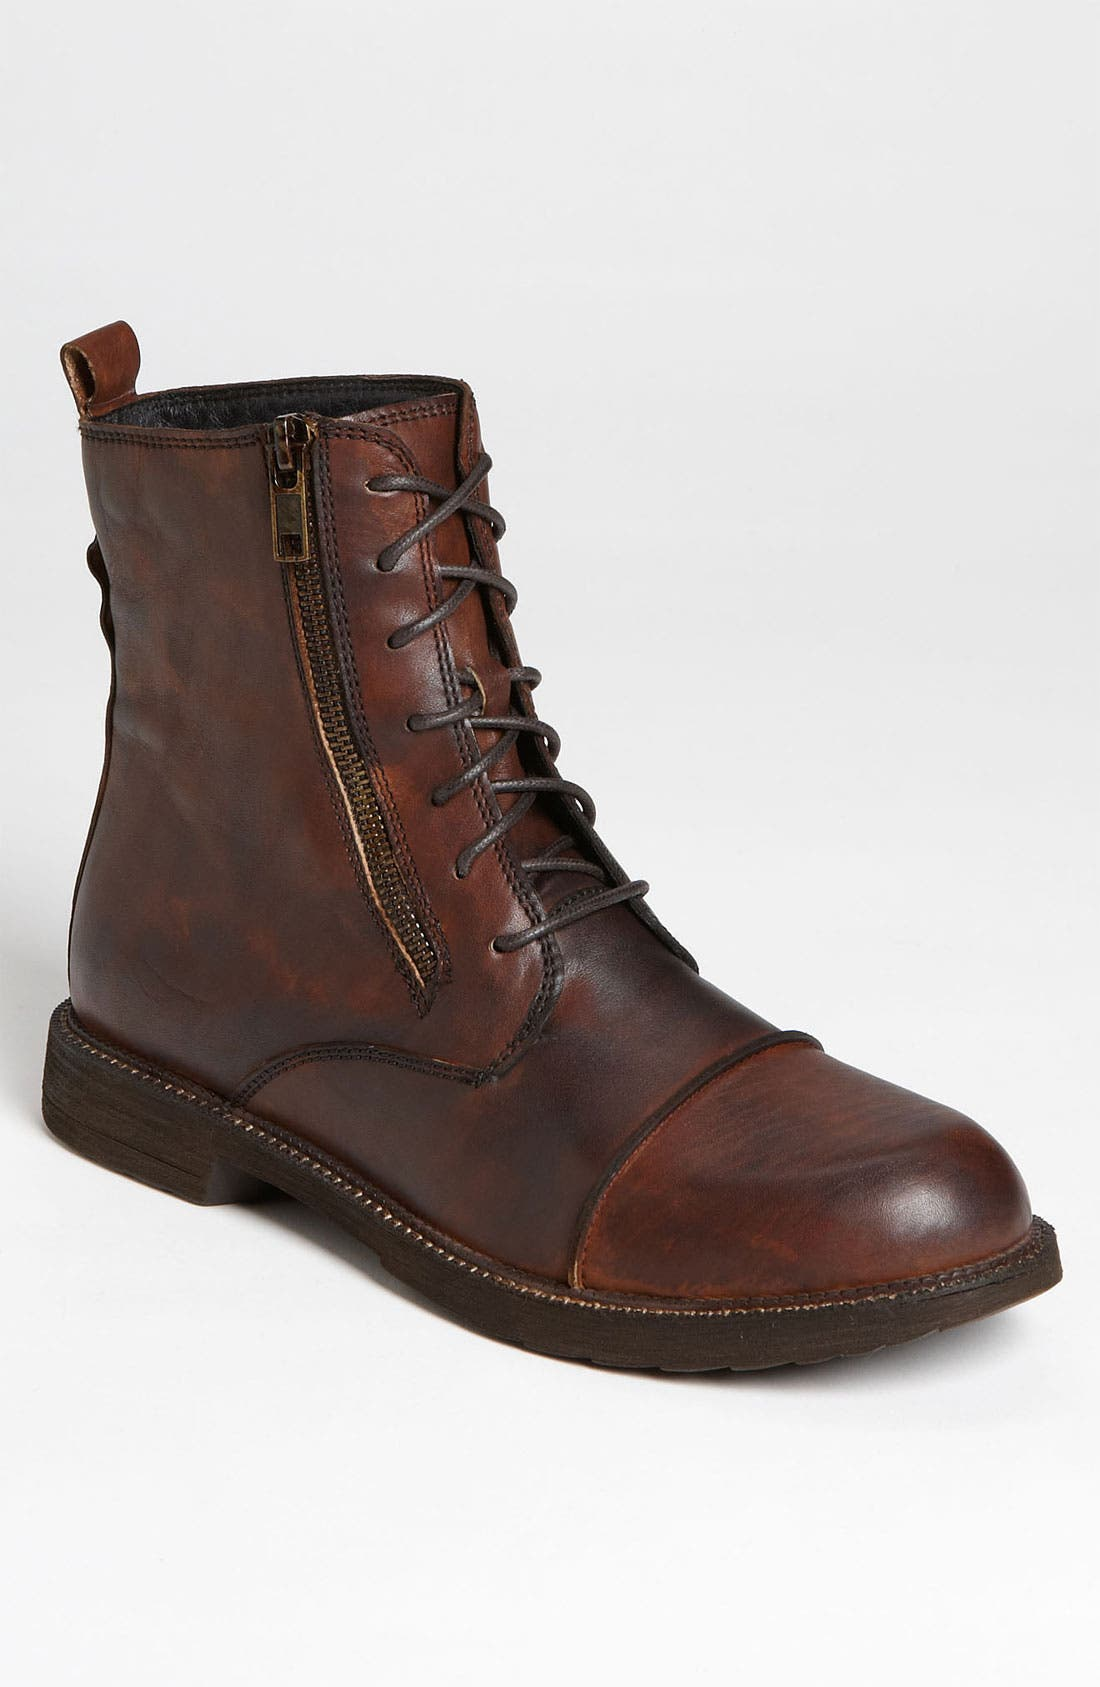 Alternate Image 1 Selected - Bed Stu 'Patriot' Cap Toe Boot (Men)